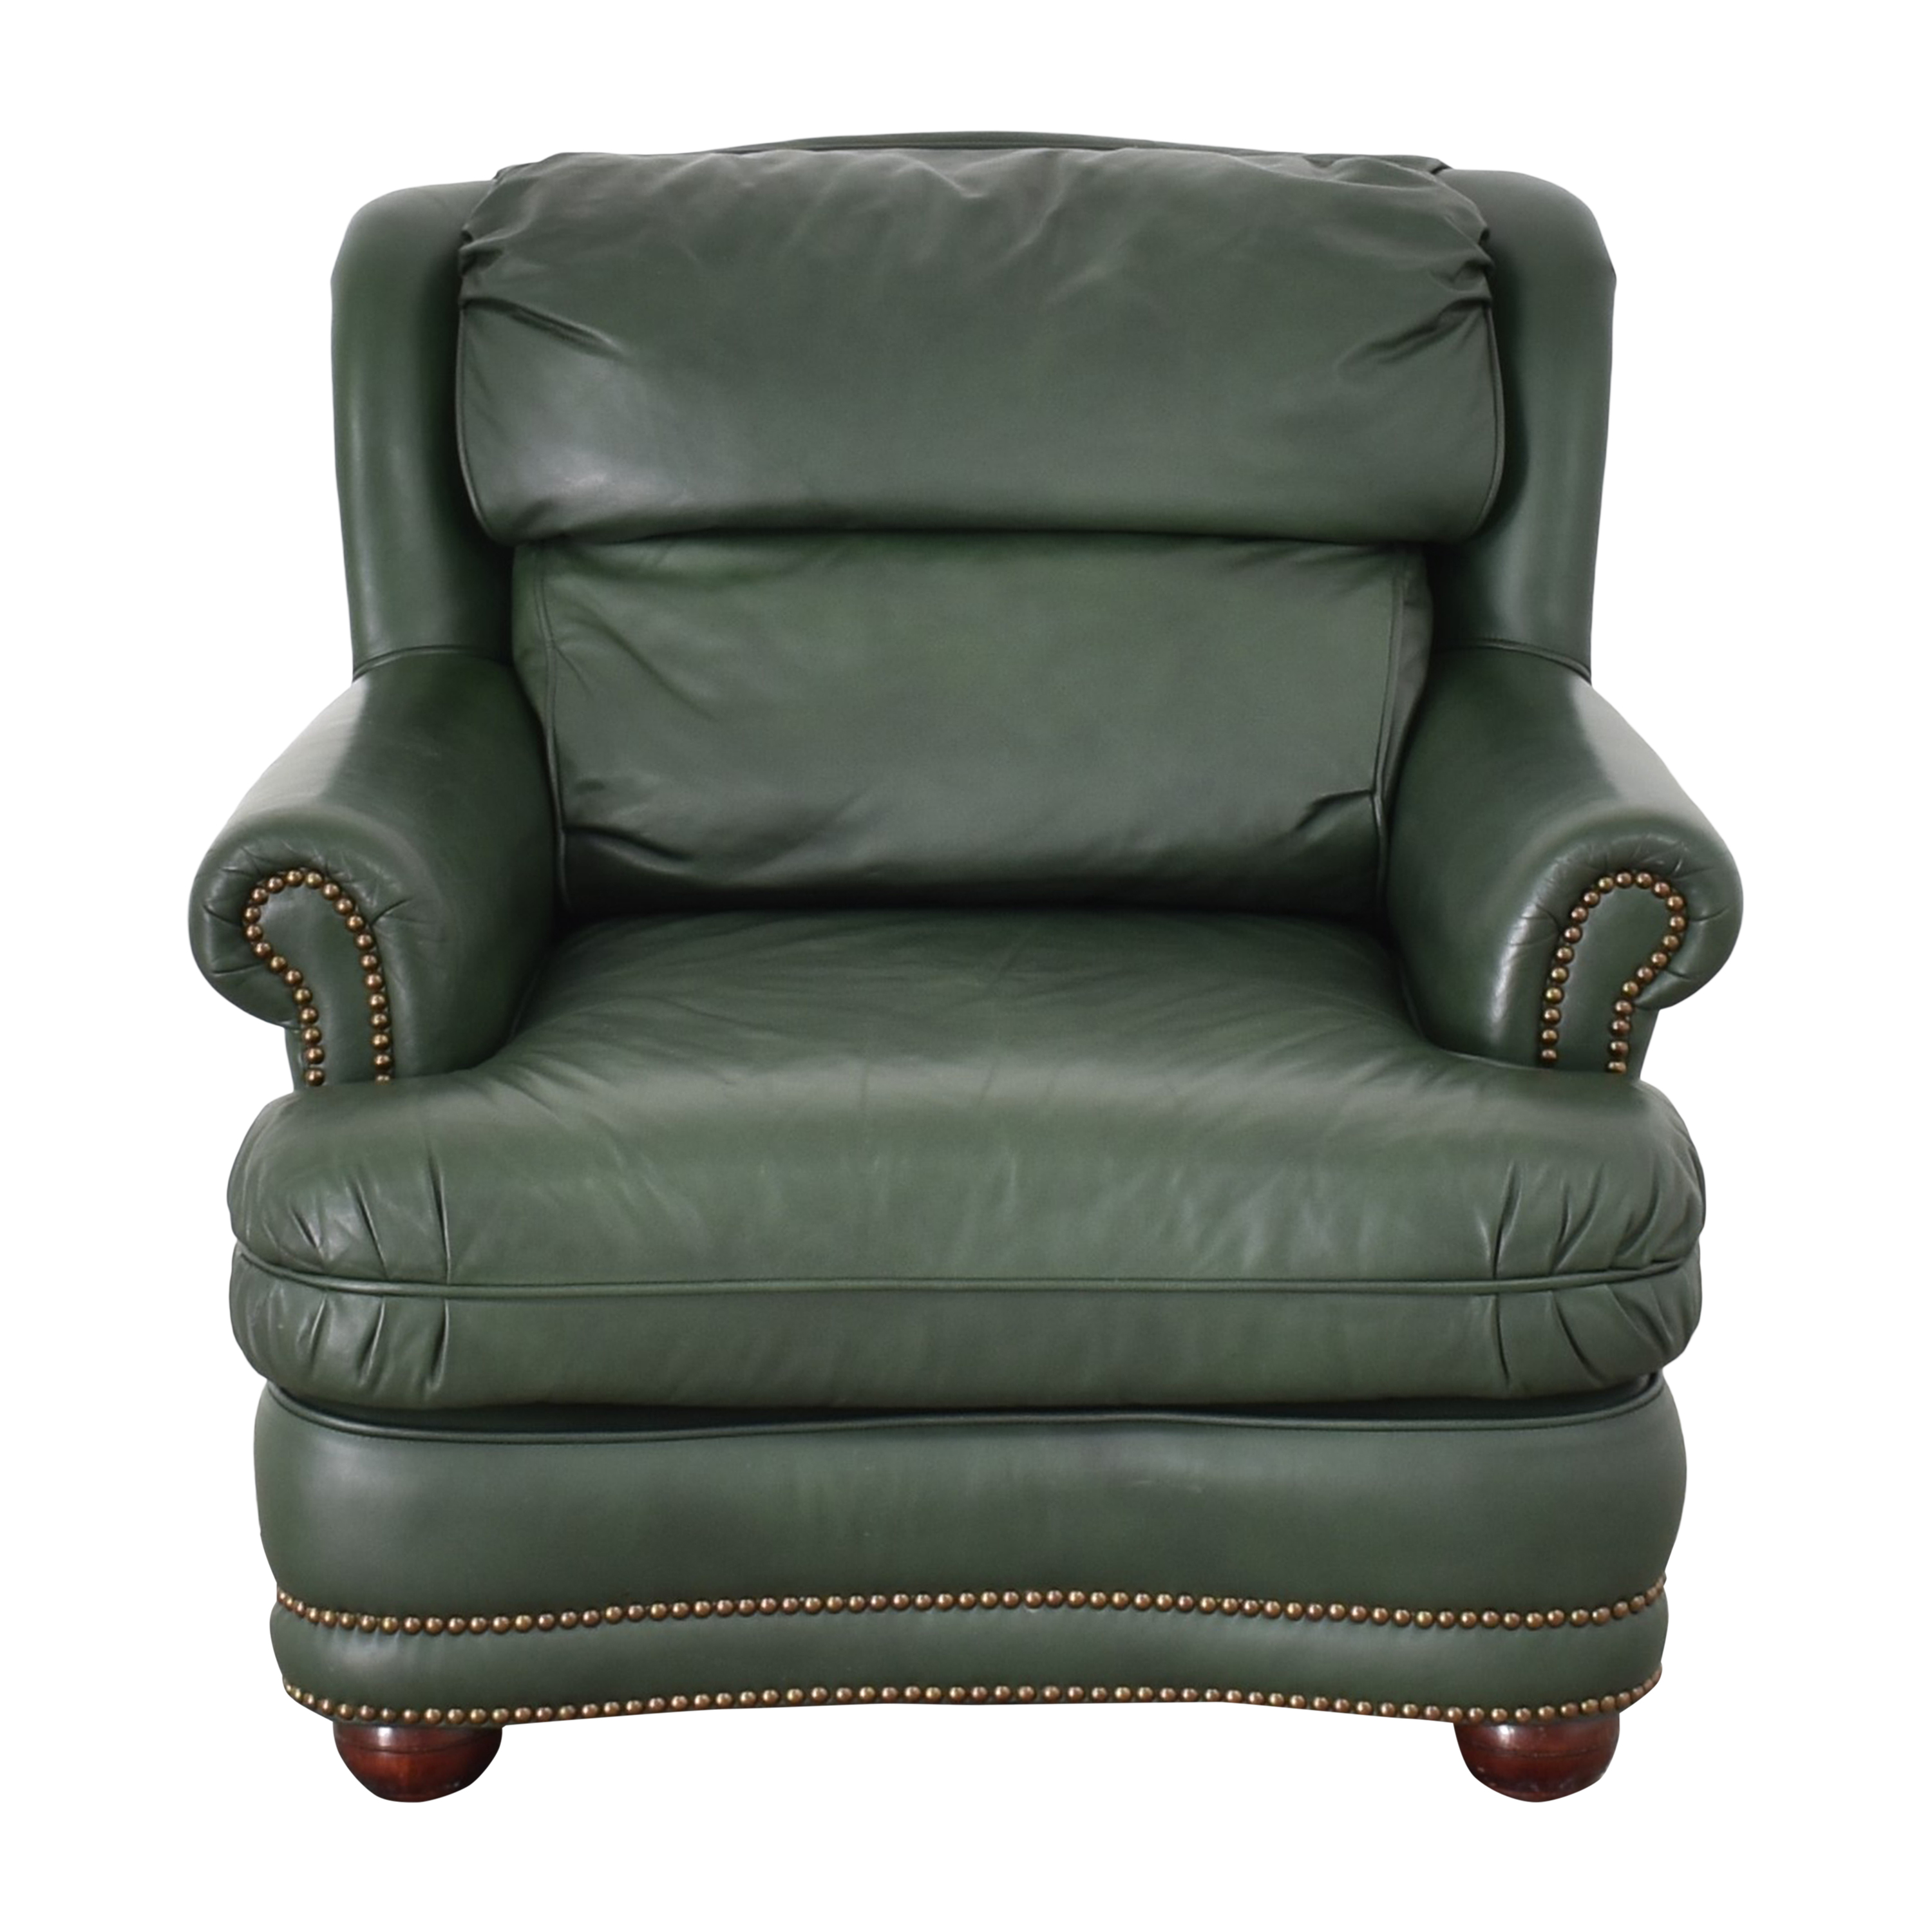 buy Classic Leather Nailhead Lounge Chair Classic Leather Accent Chairs